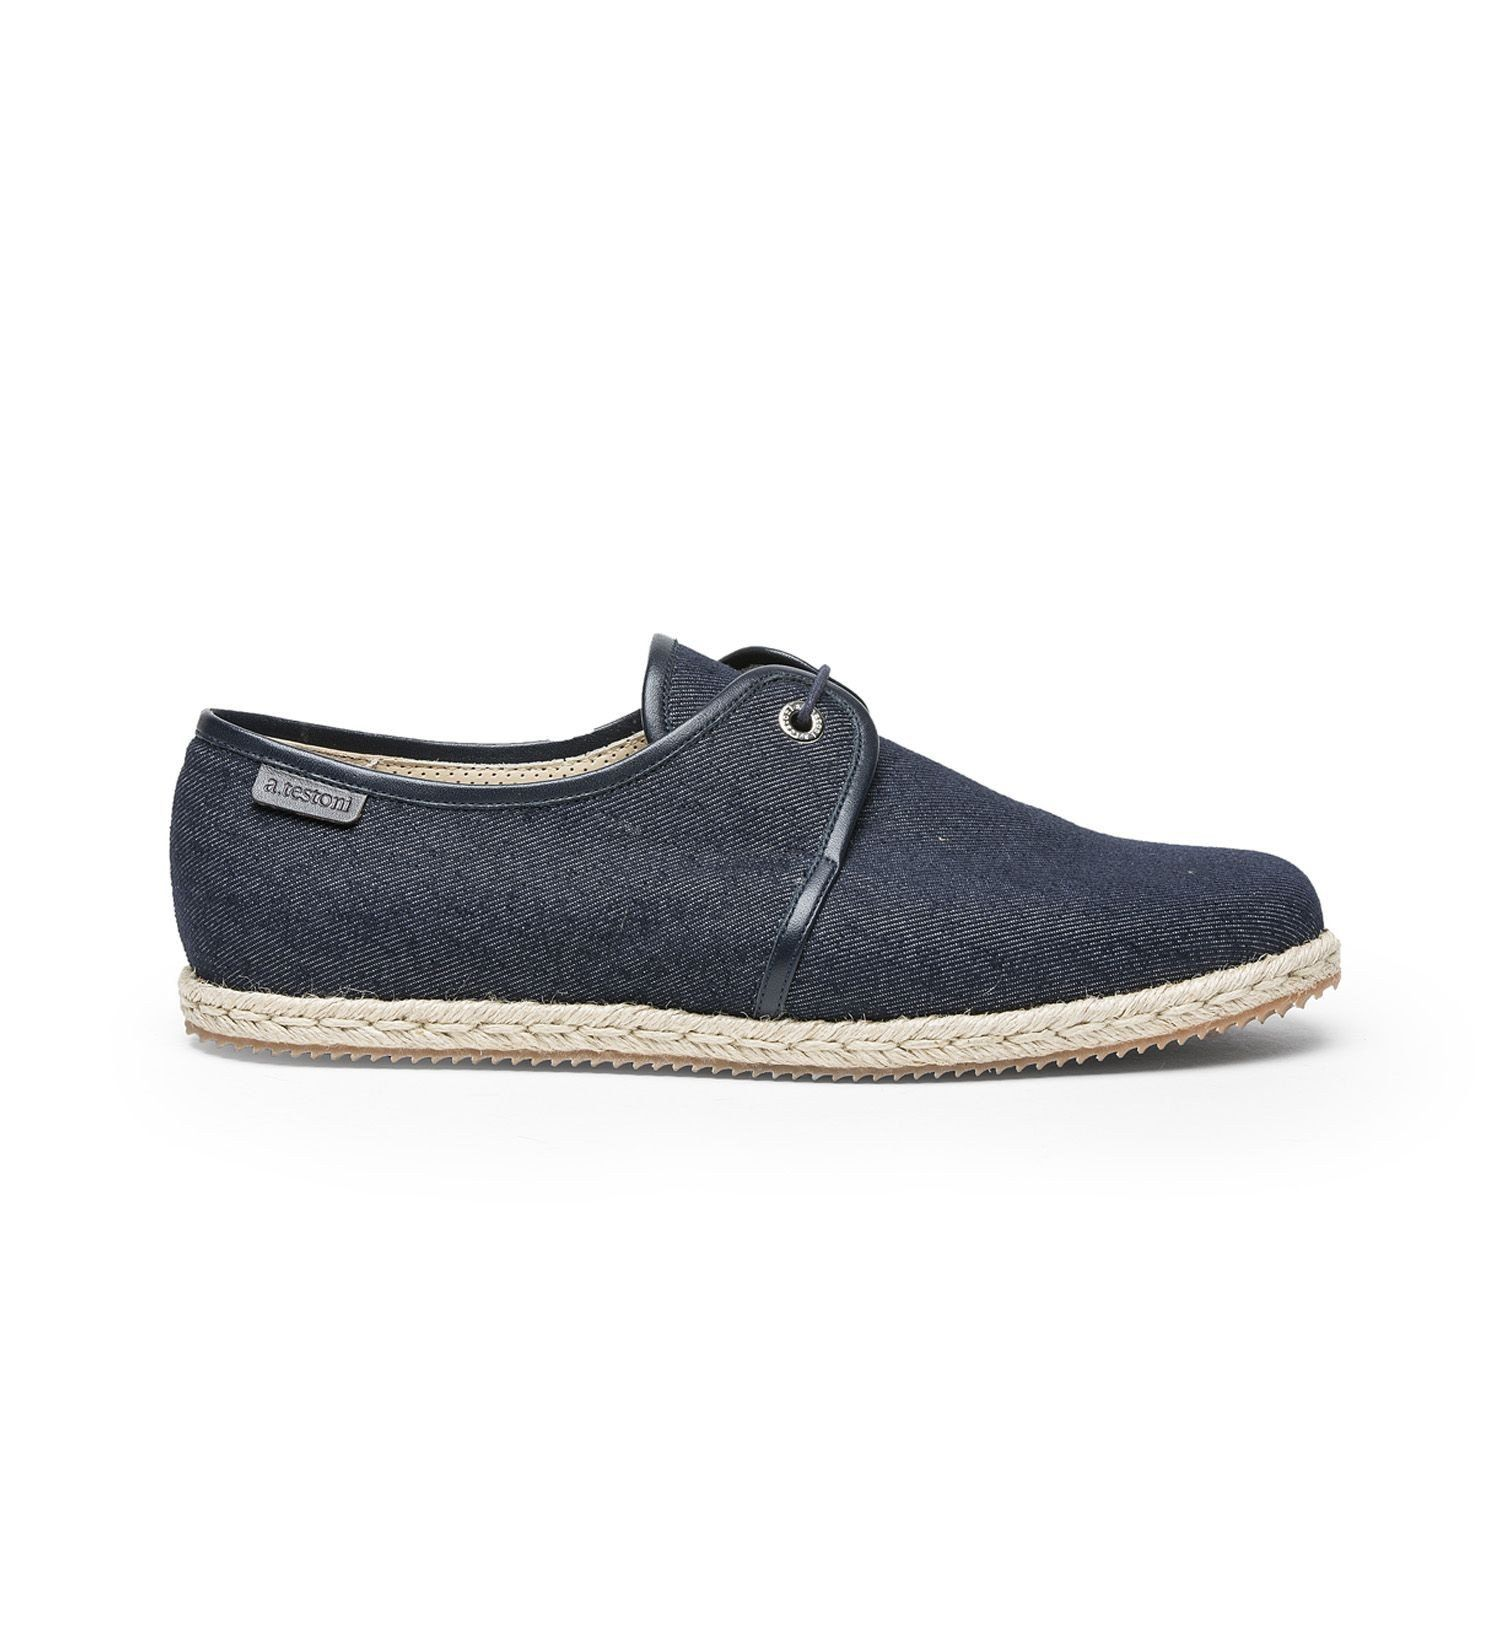 LACE-UP DENIM SHOE.,SHOES,A.TESTONI, | GentRow.com